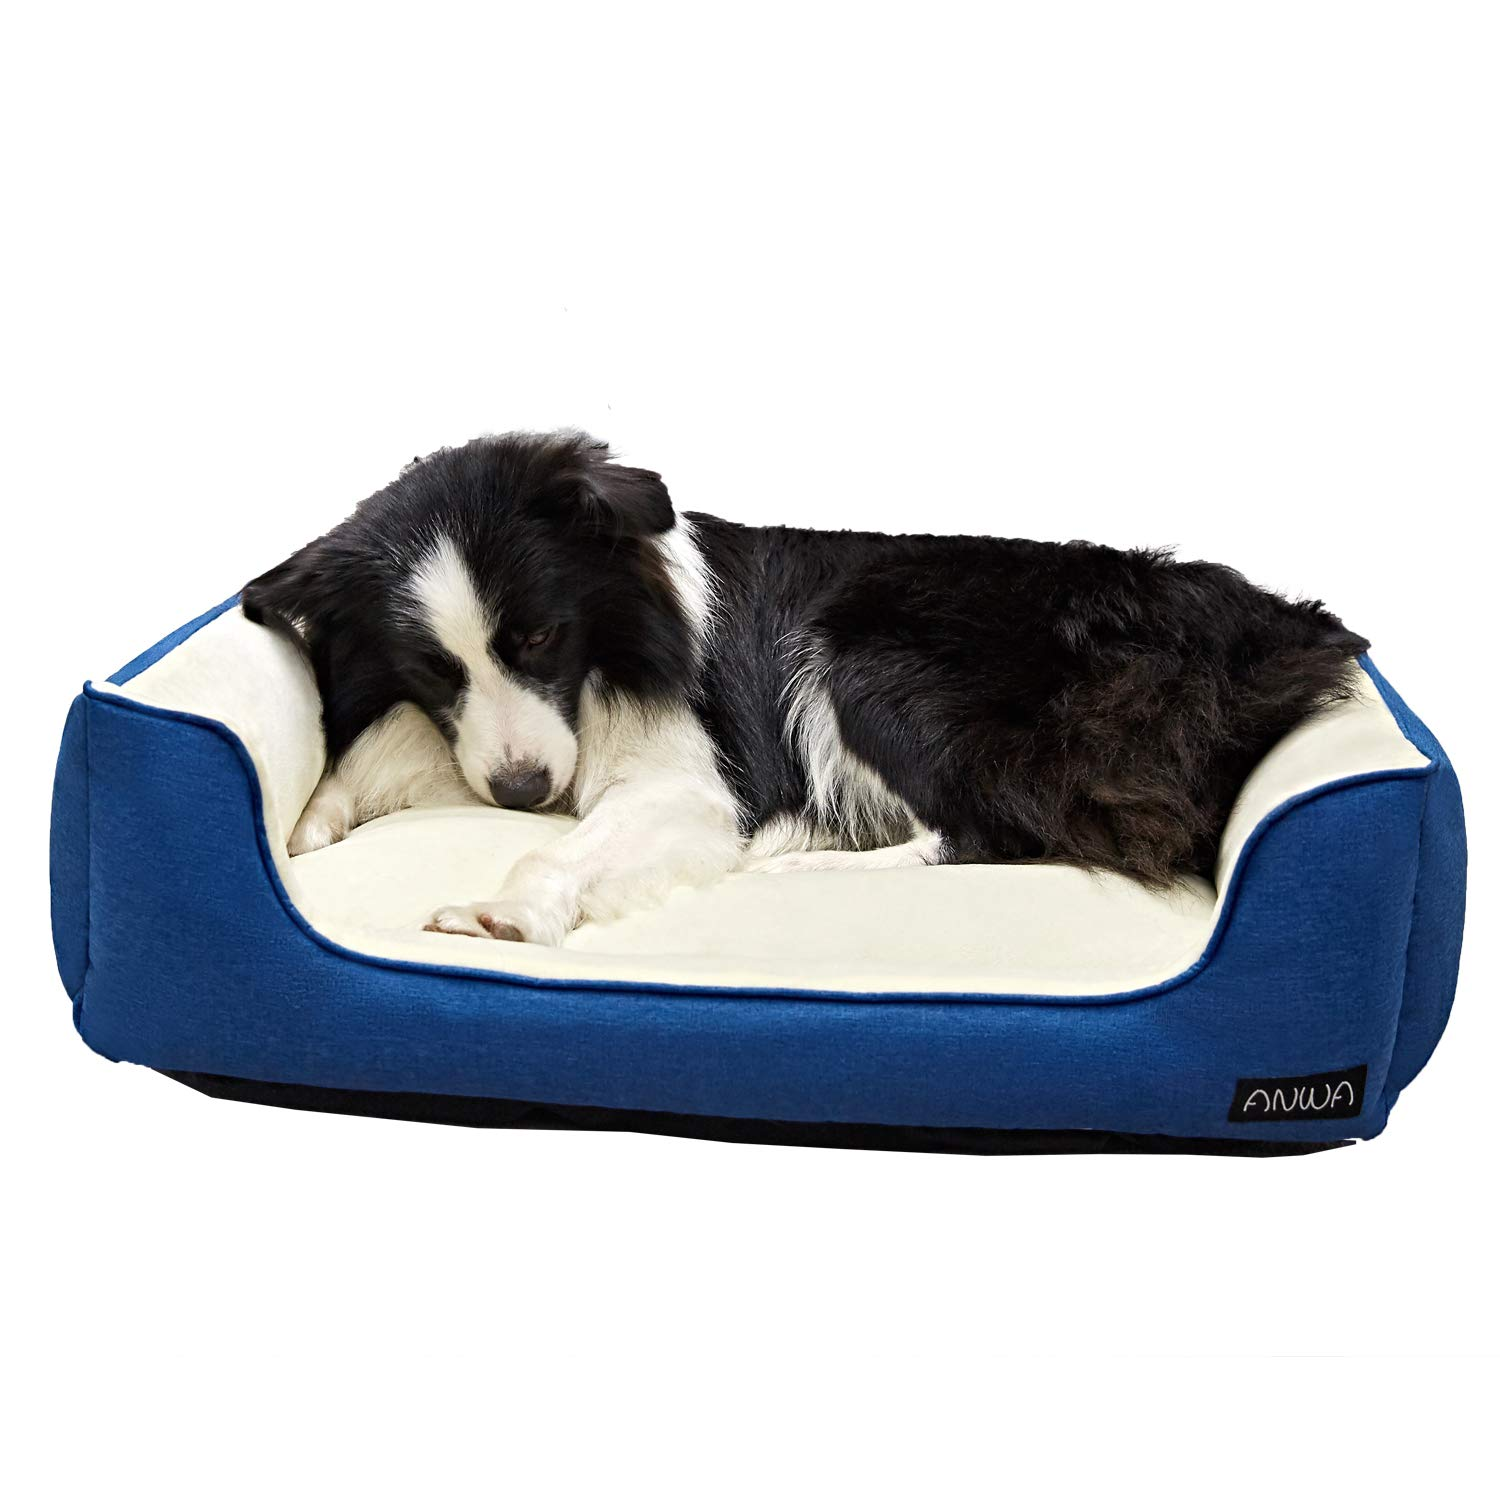 ANWA Dog Bed Machine Washable Bed Cozy Pet Bed Soft Plush for Large Medium Dogs